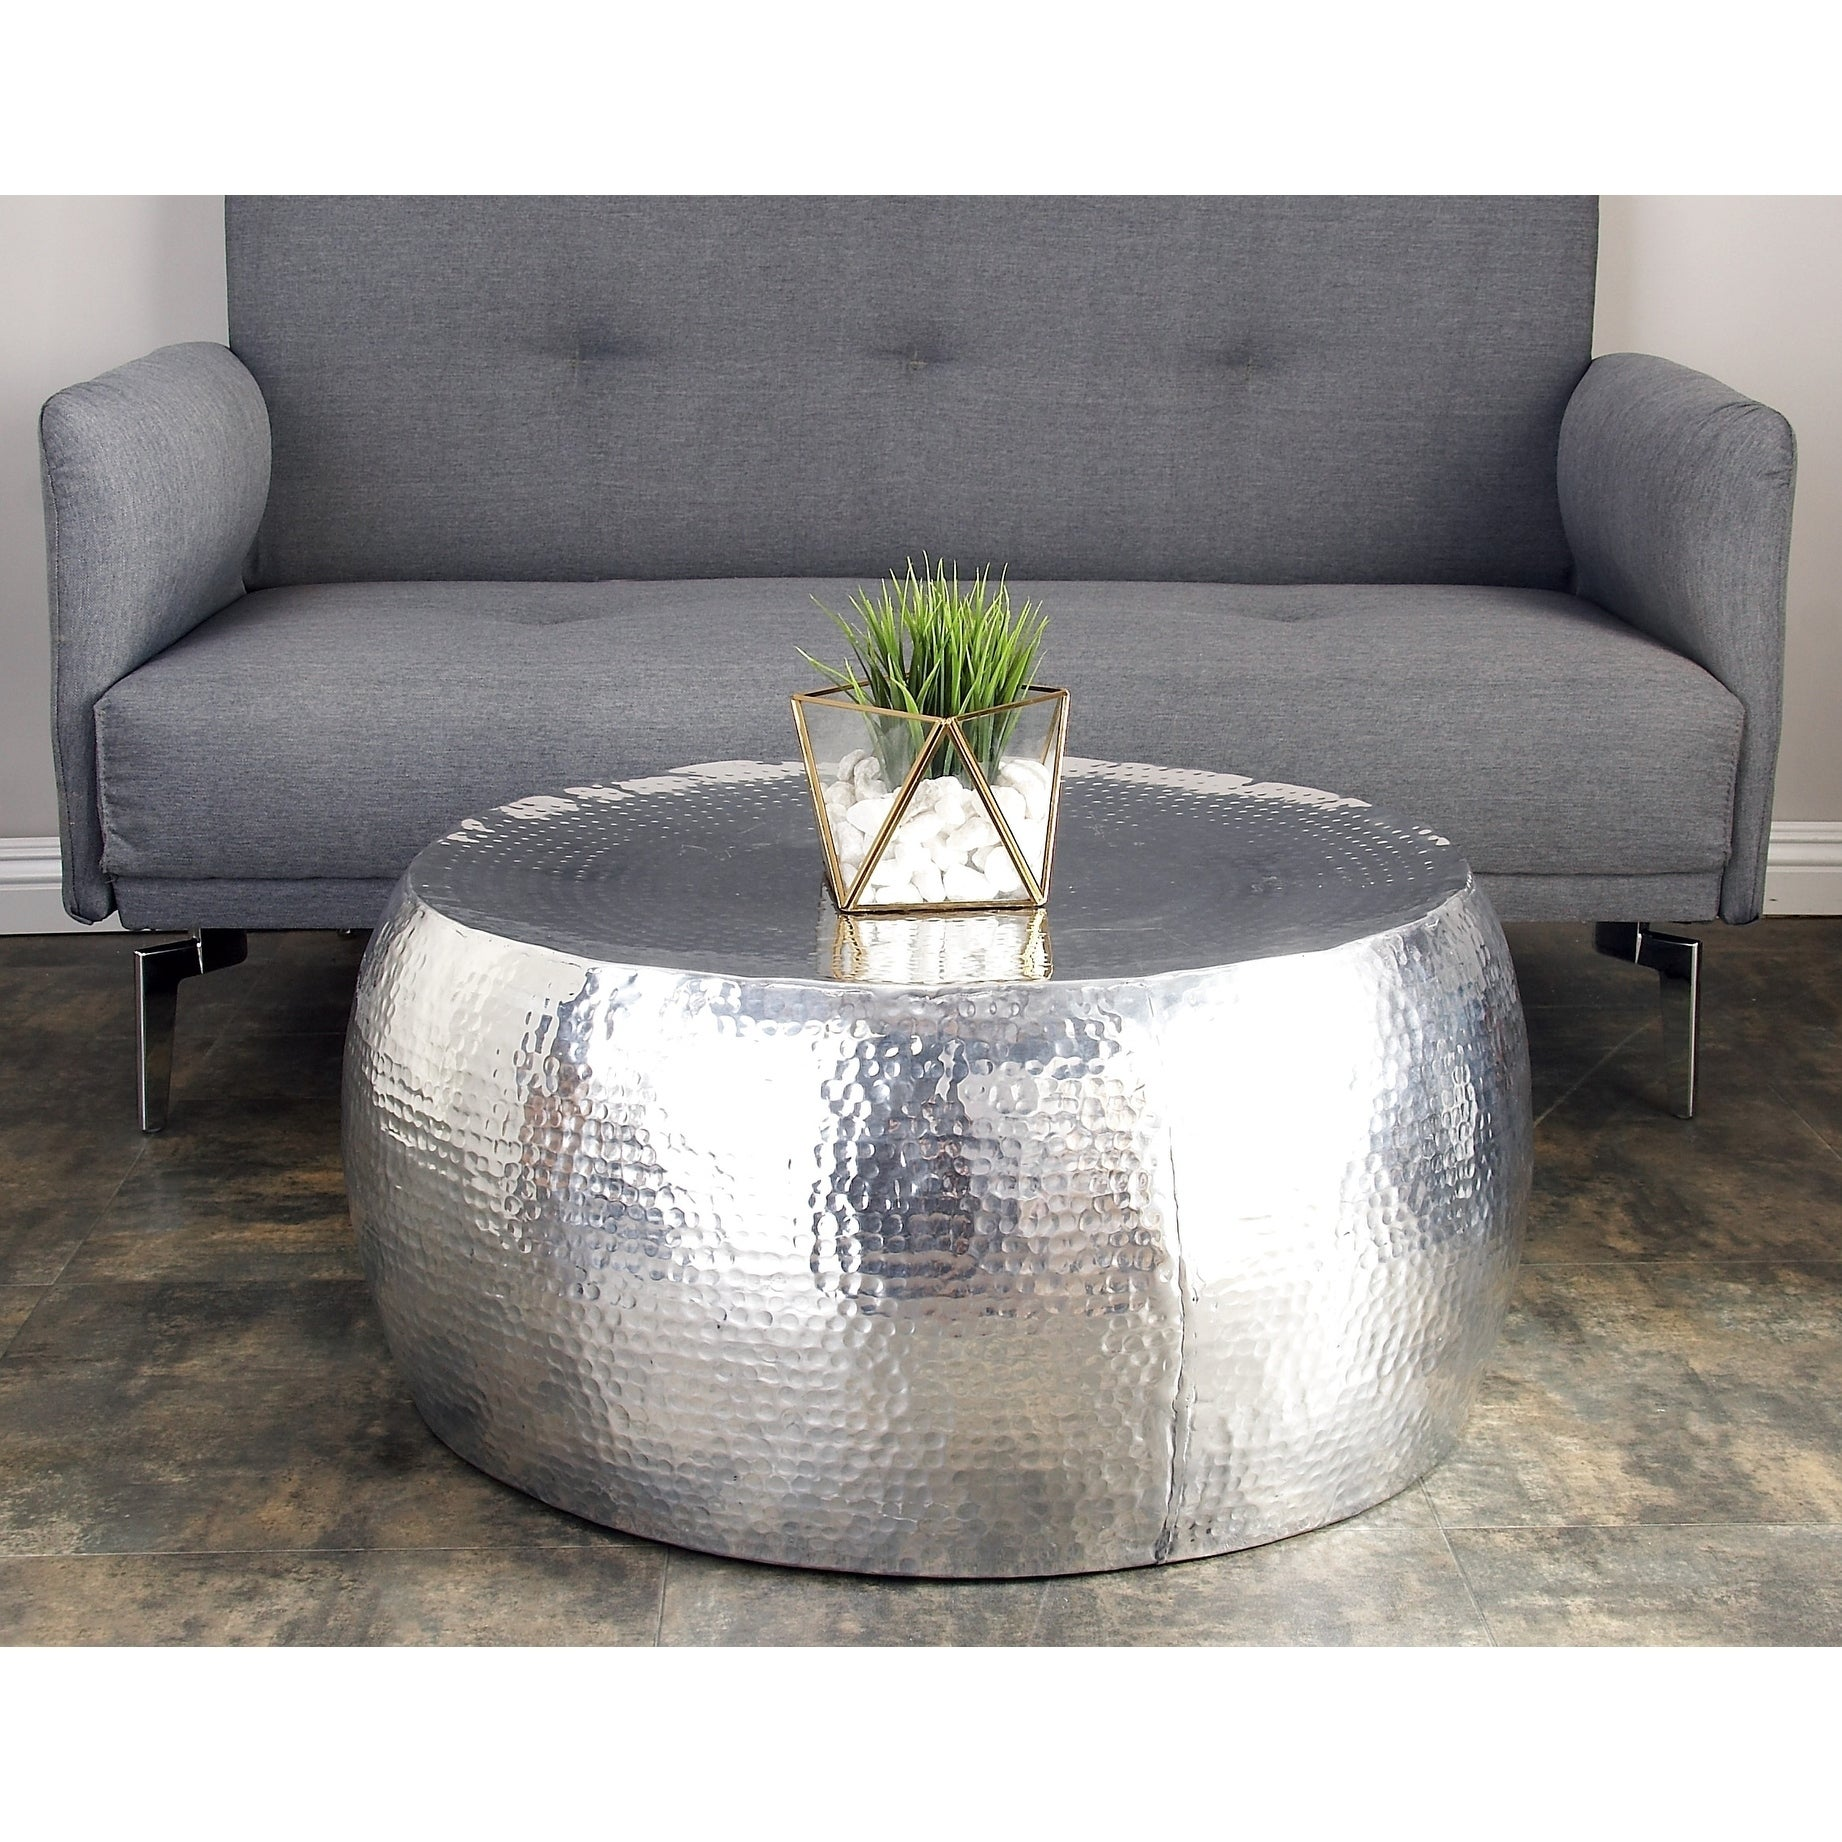 Studio 350 Aluminum Coffee Table (30 inches wide x 14 inc...